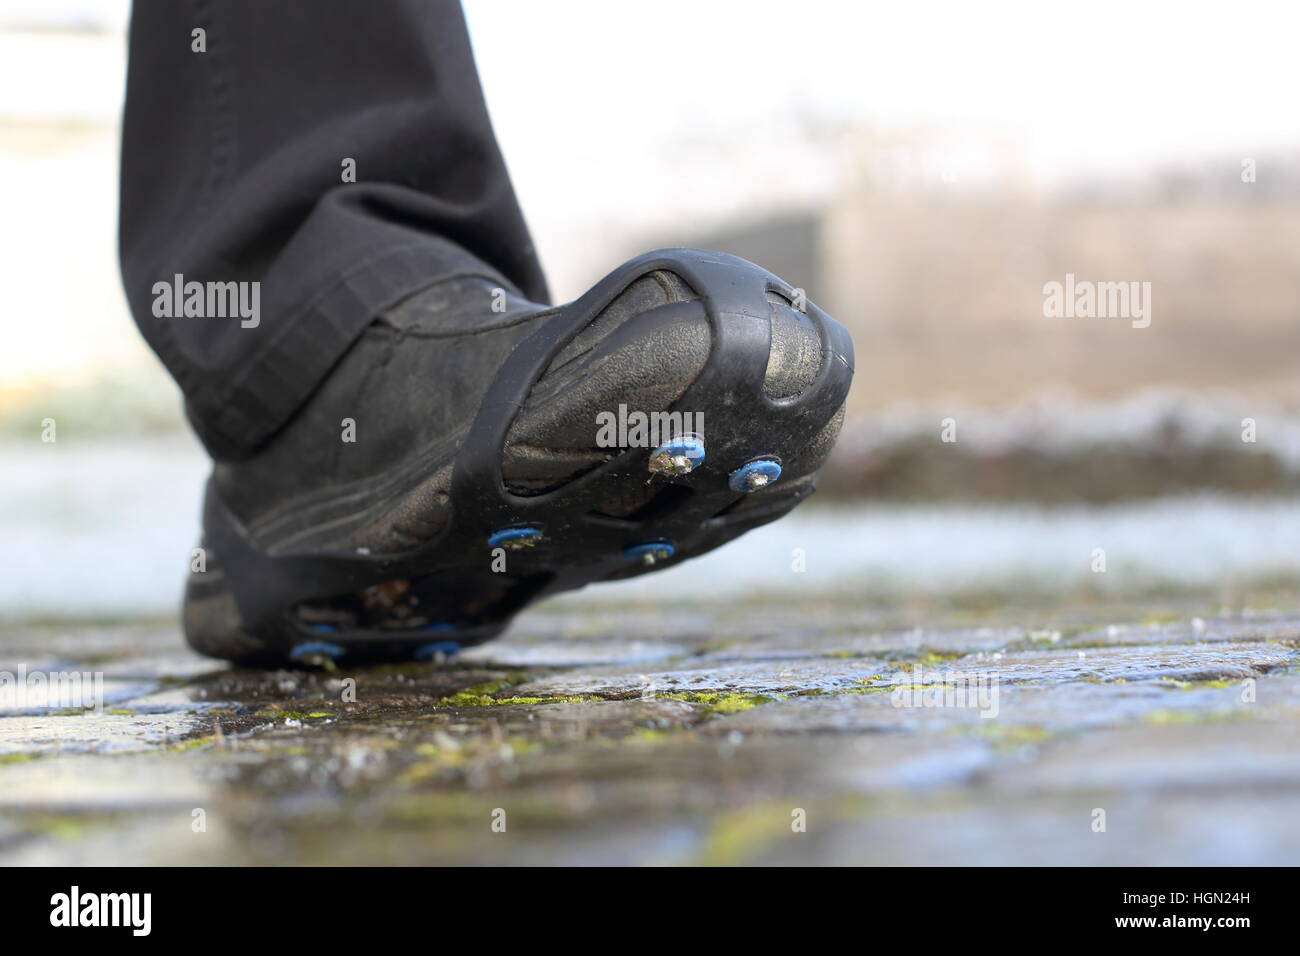 Shoe spikes, snow, chains, Shoe, ice,  winter - Stock Image